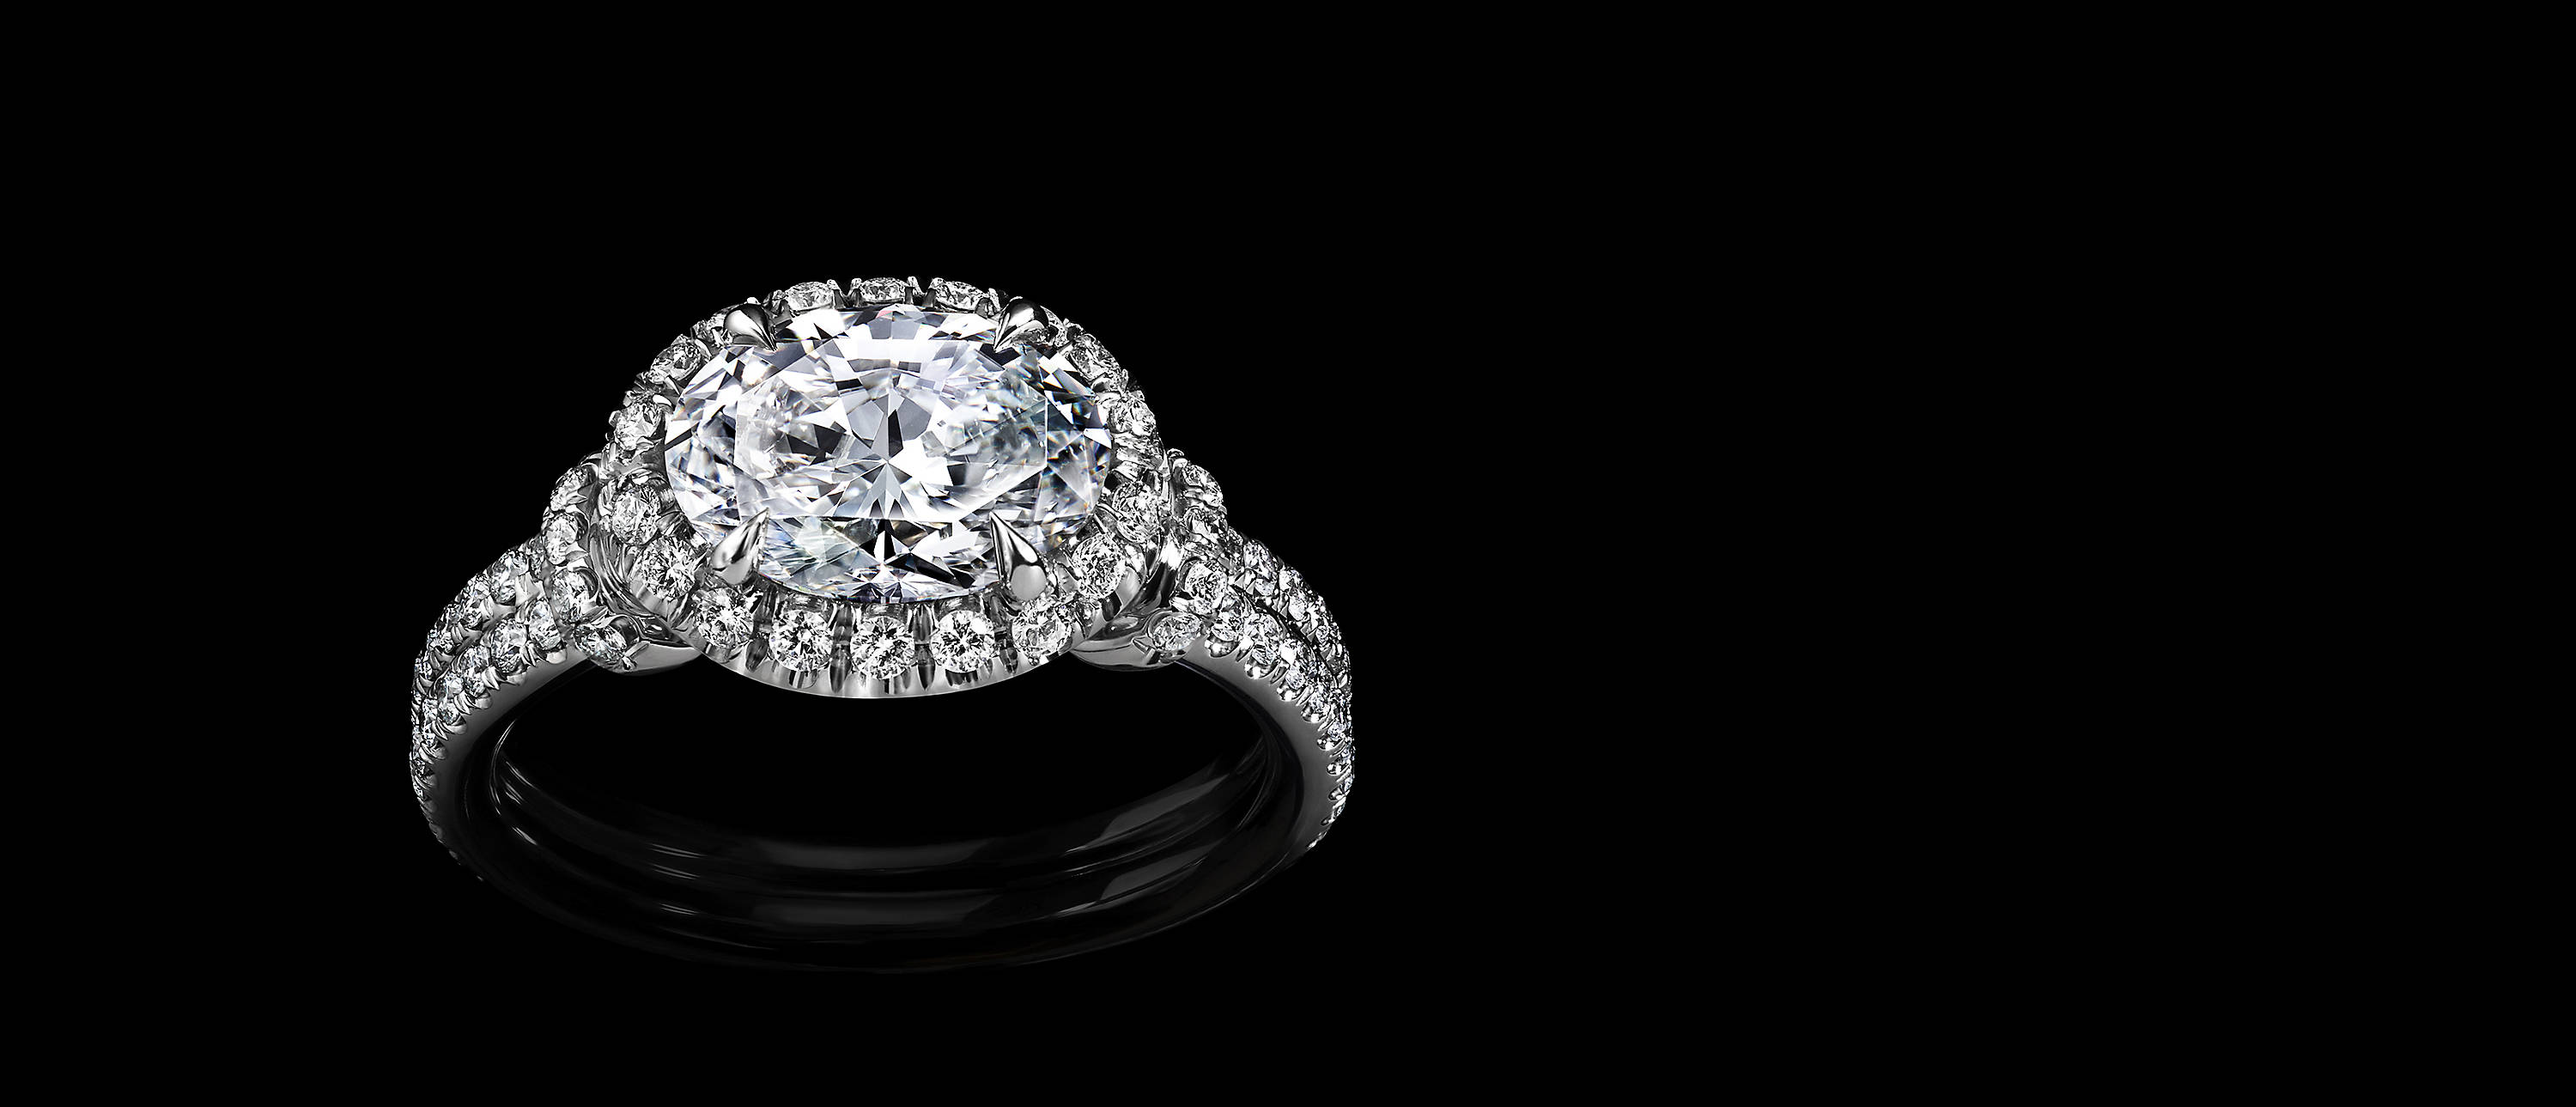 Shot against black, a DY Capri engagement ring in platinum with an oval-shaped center stone, a halo of pavé diamonds and two rows of pavé diamonds on its shank.